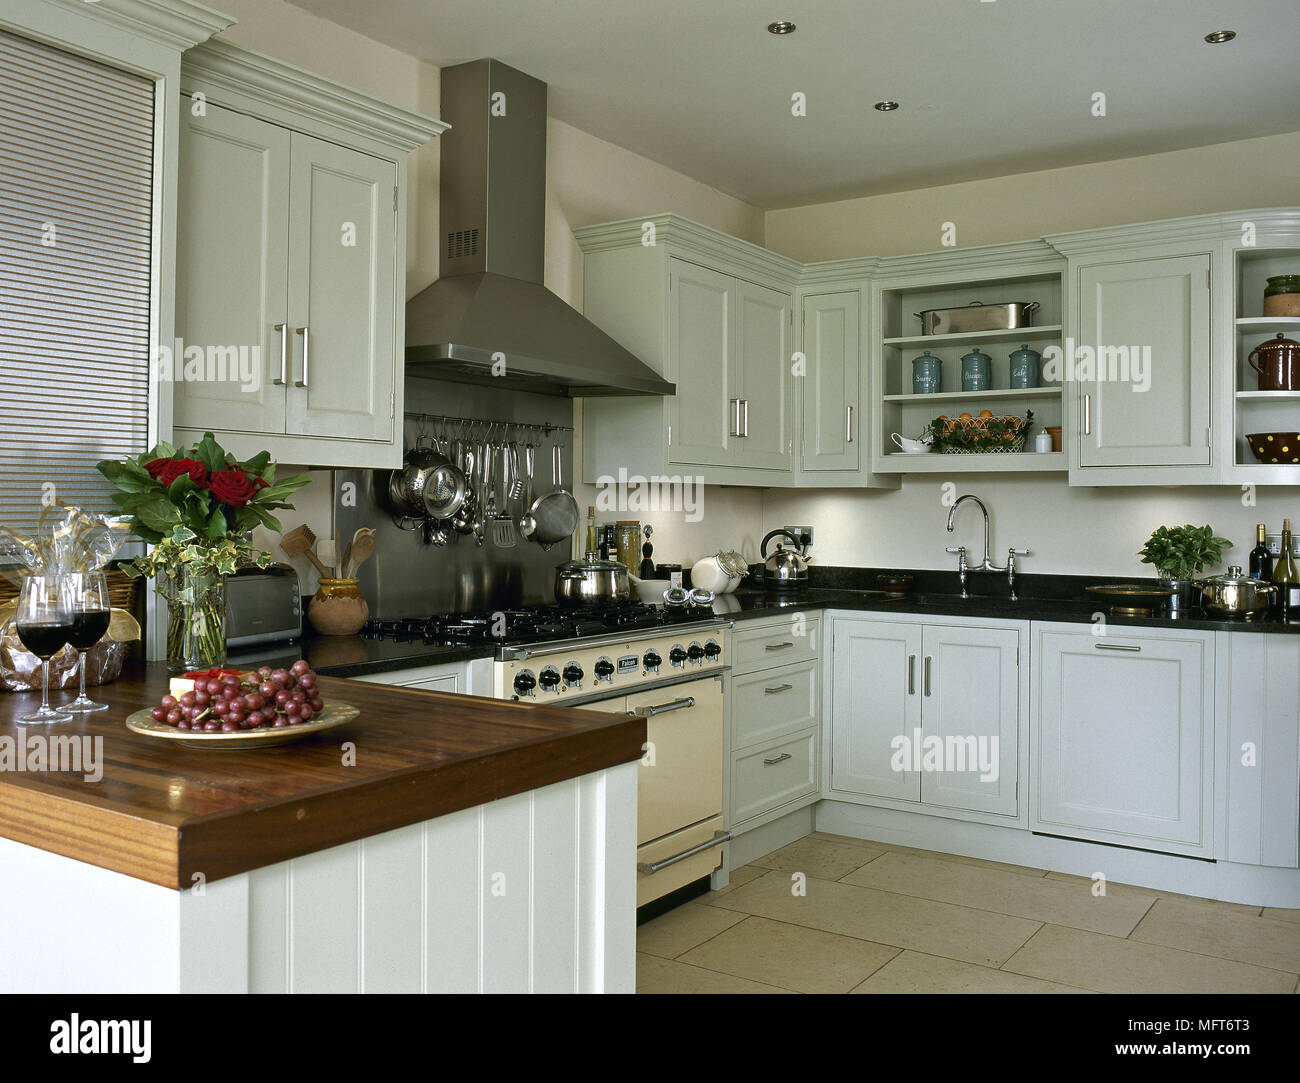 Cooker hood over range oven in contemporary country style kitchen